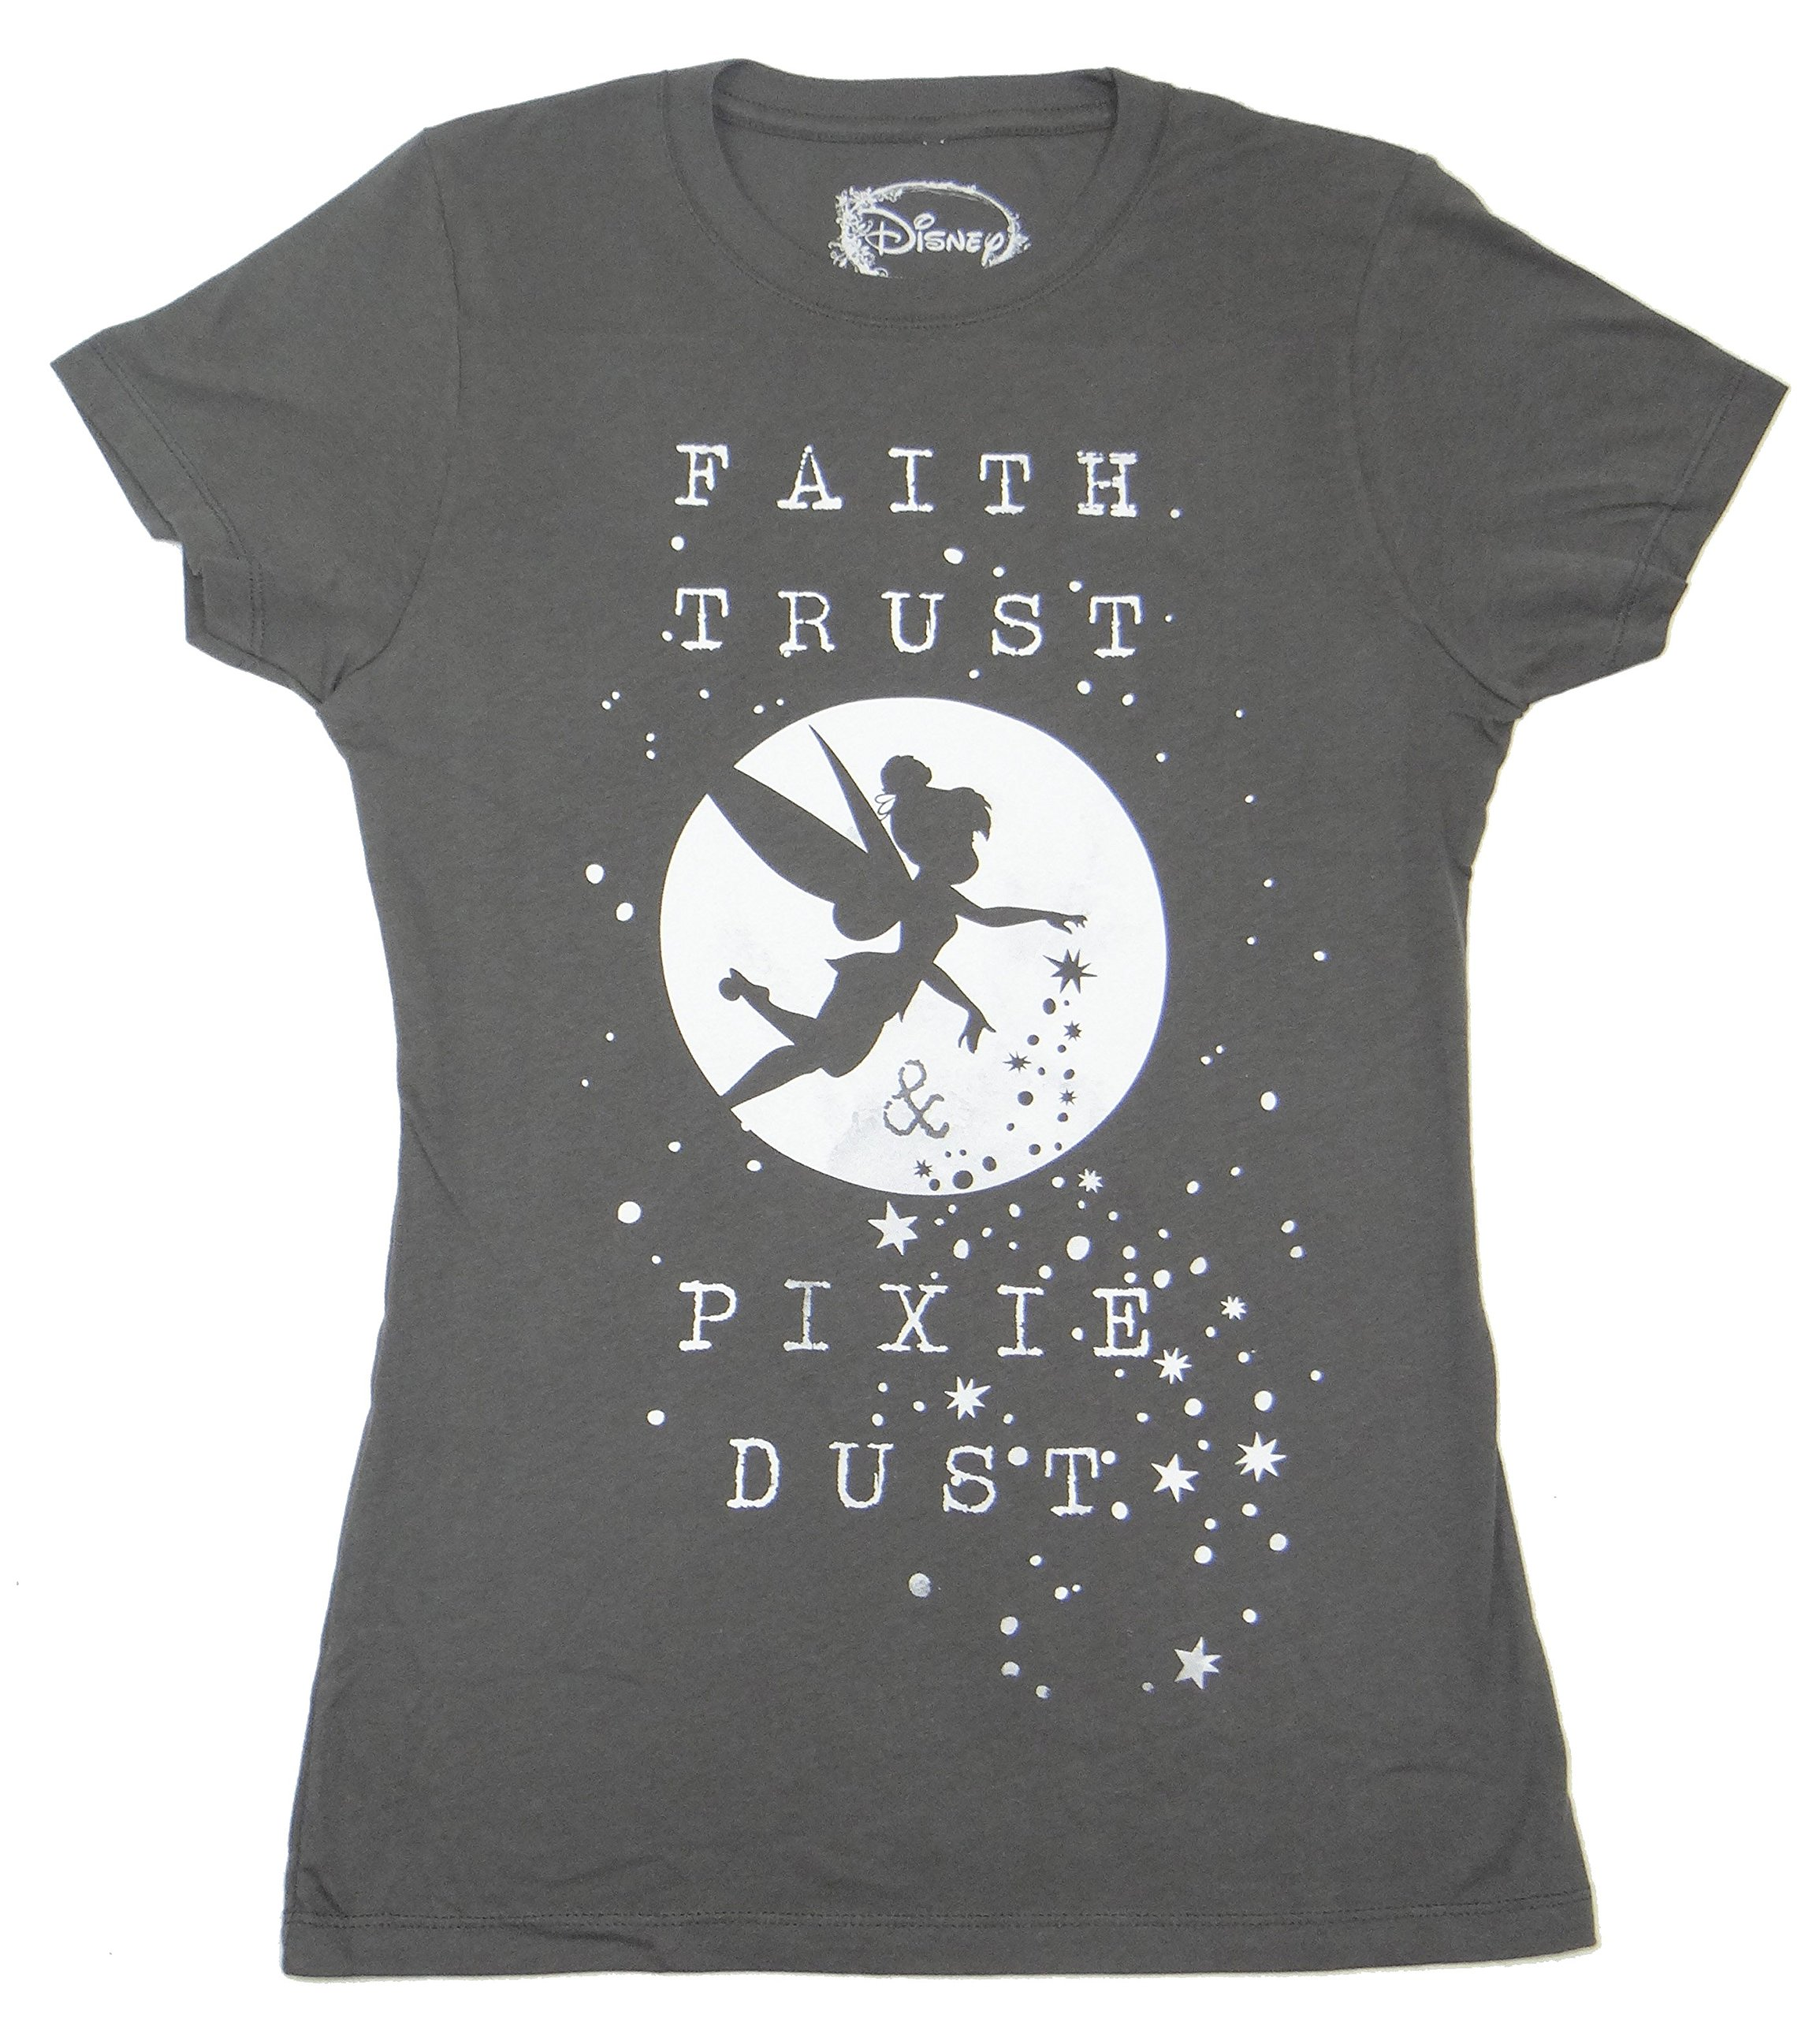 Peter Pan Tinkerbell Faith Trust And Pixie Dust Juniors T-shirt (Charcoal, X-Large) by Disney (Image #1)